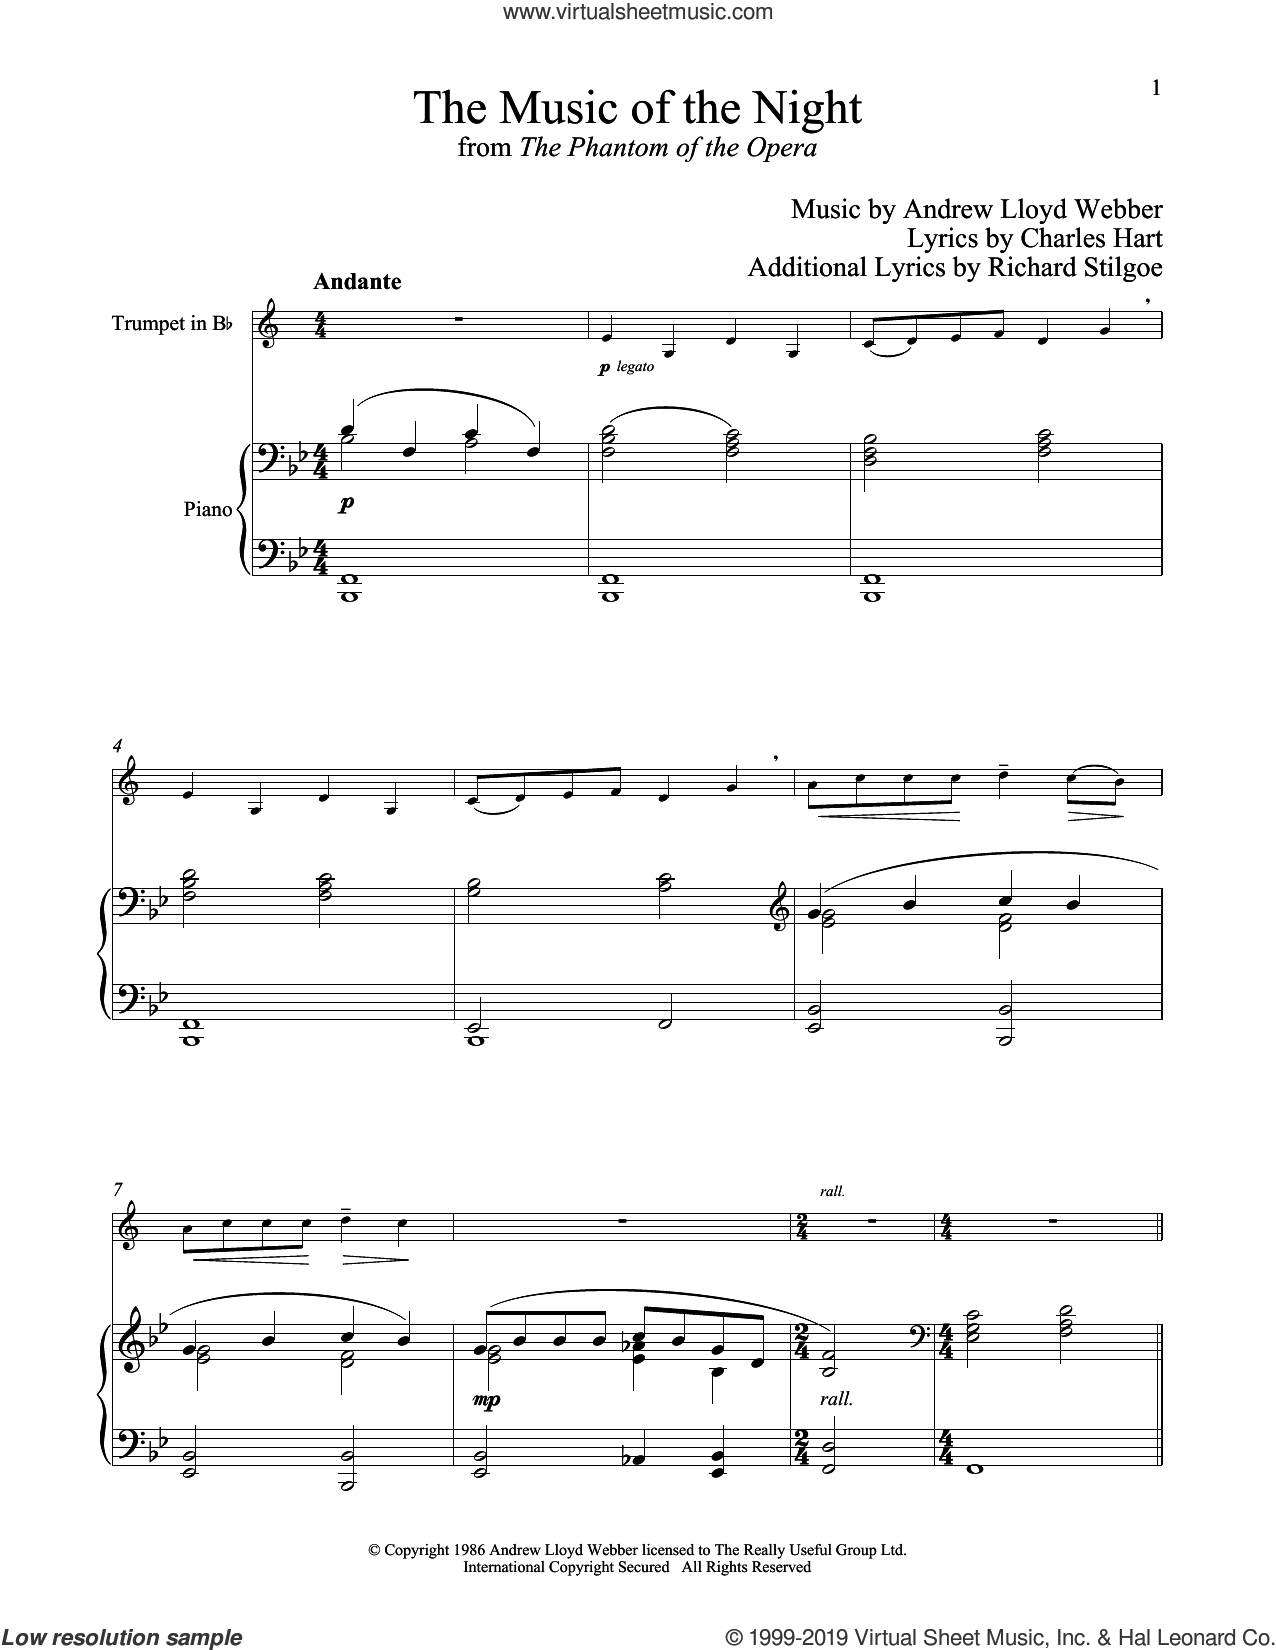 The Music of the Night (from The Phantom of the Opera) sheet music for trumpet and piano by Andrew Lloyd Webber, Charles Hart and Richard Stilgoe, intermediate skill level